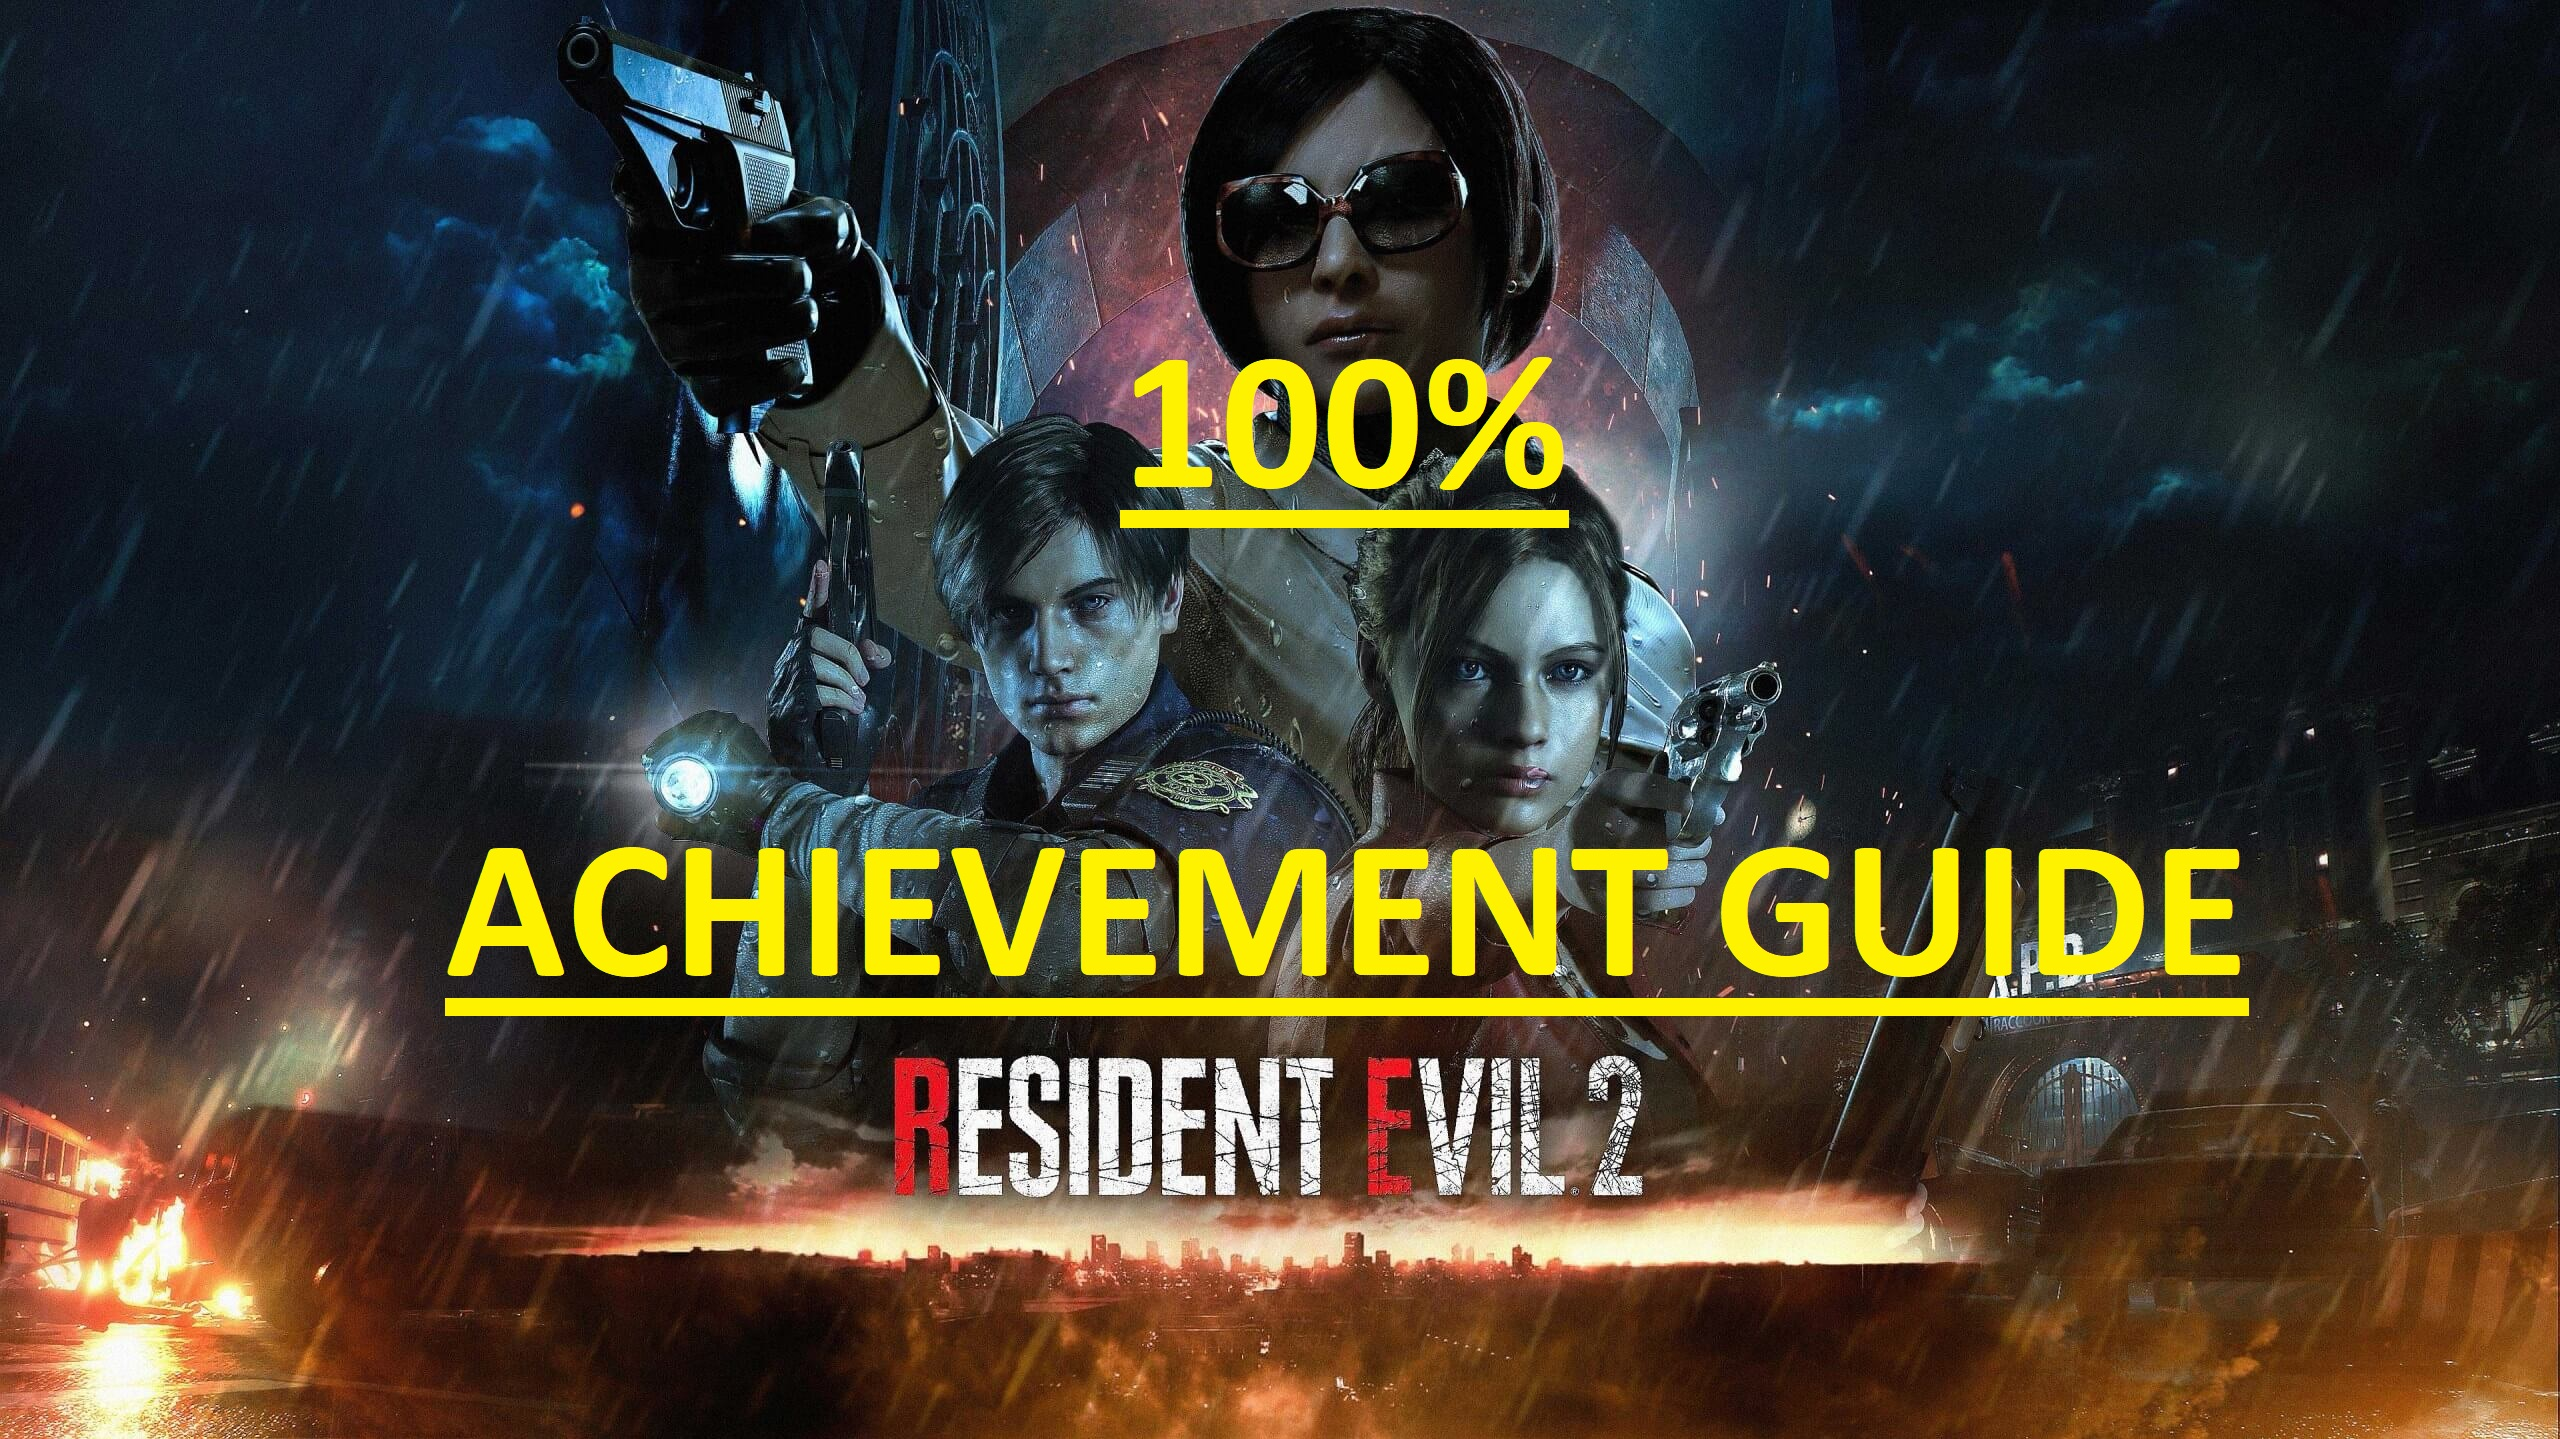 Steam Community :: Guide :: 100% Achievement Guide with puzzle